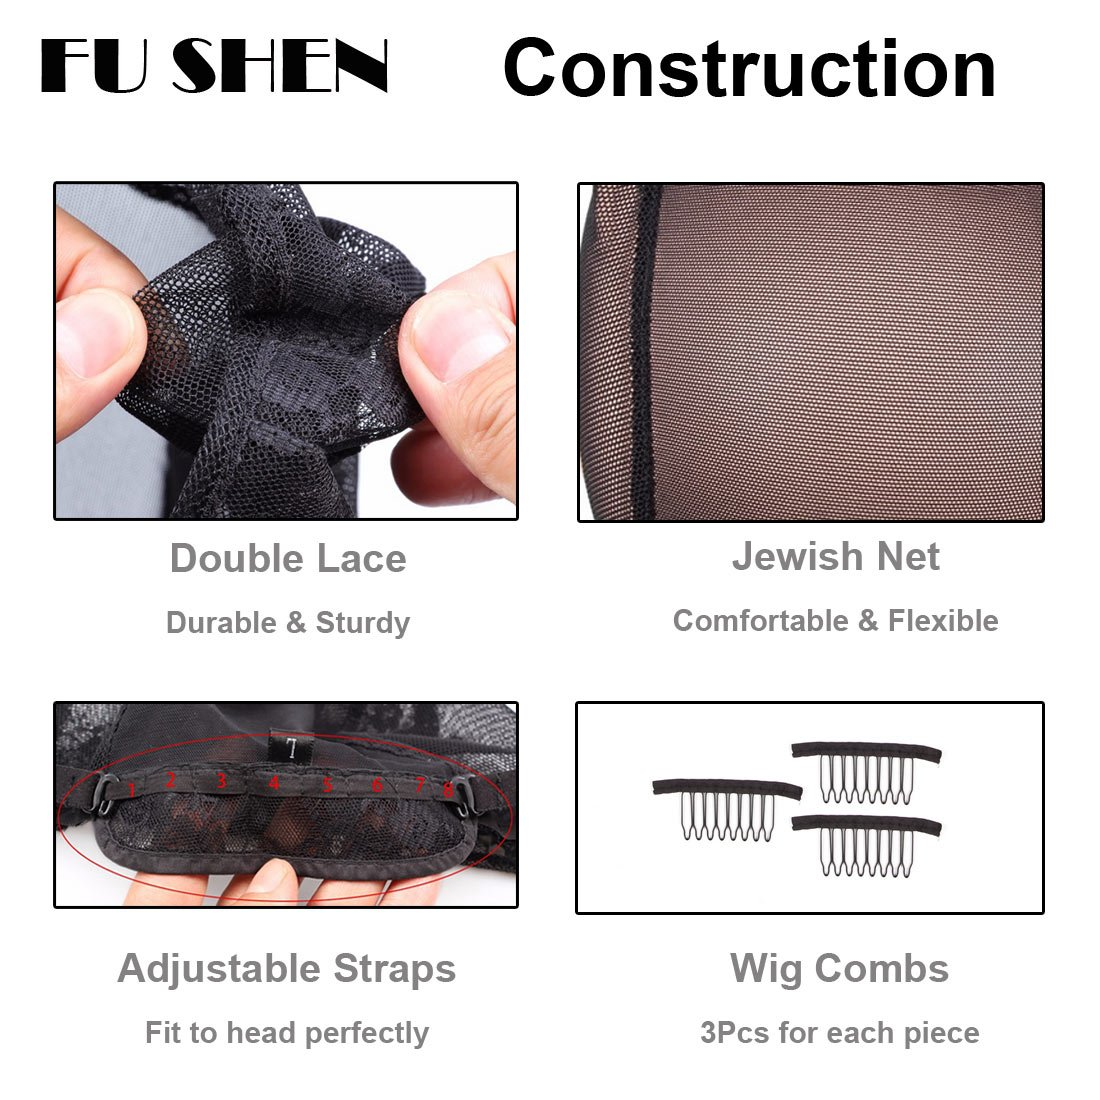 Elastic Wig Caps For Making Wigs Stretch Lace Weaving Cap Extra Large For Big Head with Adjustable Straps and Combs (Black 1 Piece XL-23Inch) by FU SHEN (Image #6)